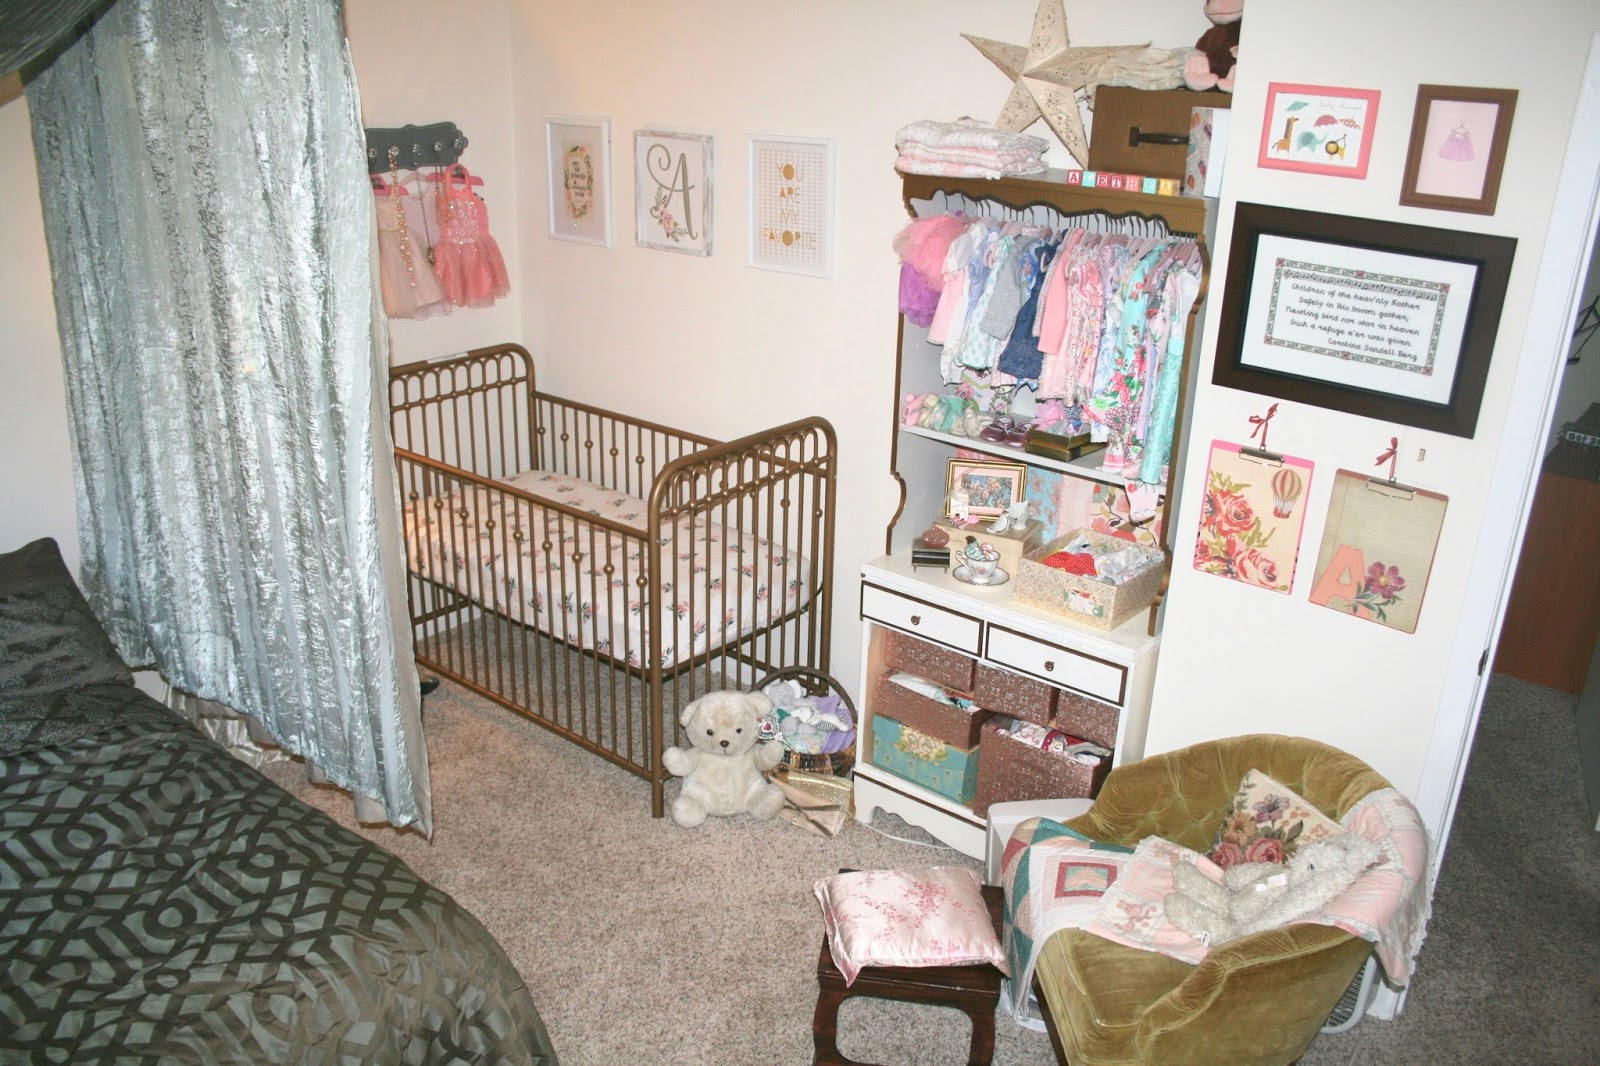 Nice Ashley And Jasonu0027s Side Of The Room Holds Their Bed And A Small Dresser At  The End Of The Bed. They Kept The Space Romantic With Beautiful Bedding, ...